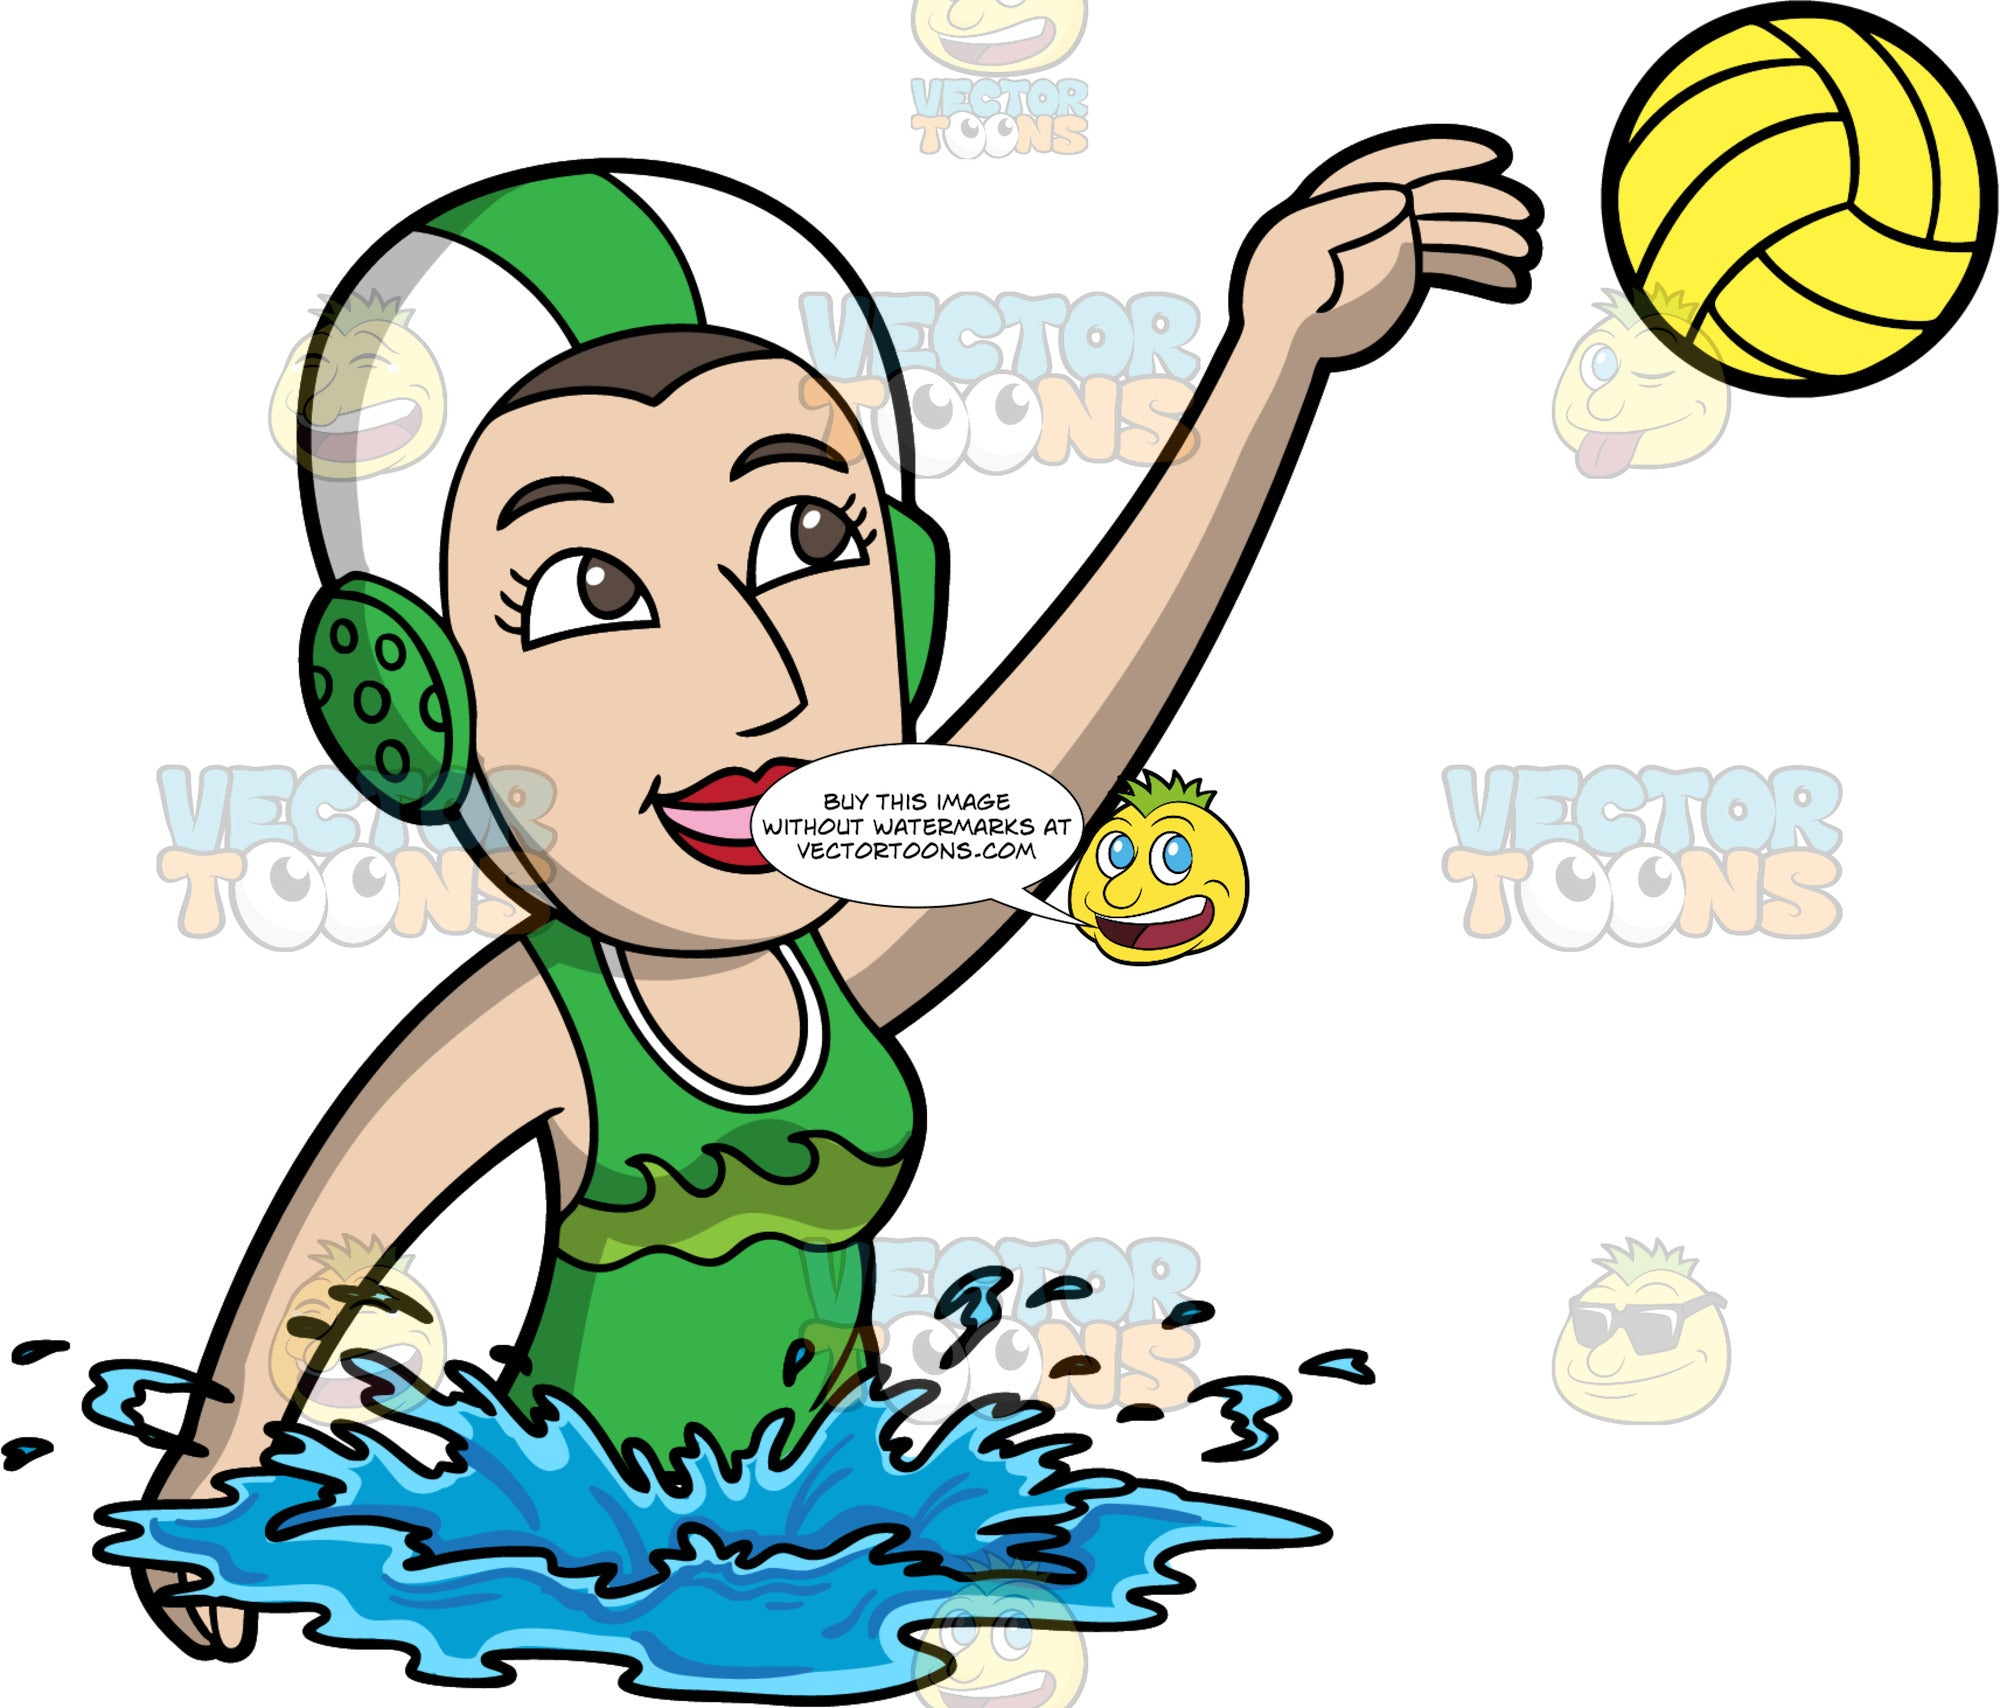 A Woman Throwing a Water Polo Ball. A woman wearing a white and green water polo cap, and a green bathing suit, lifts her one arm up in the air and throws a yellow water polo ball